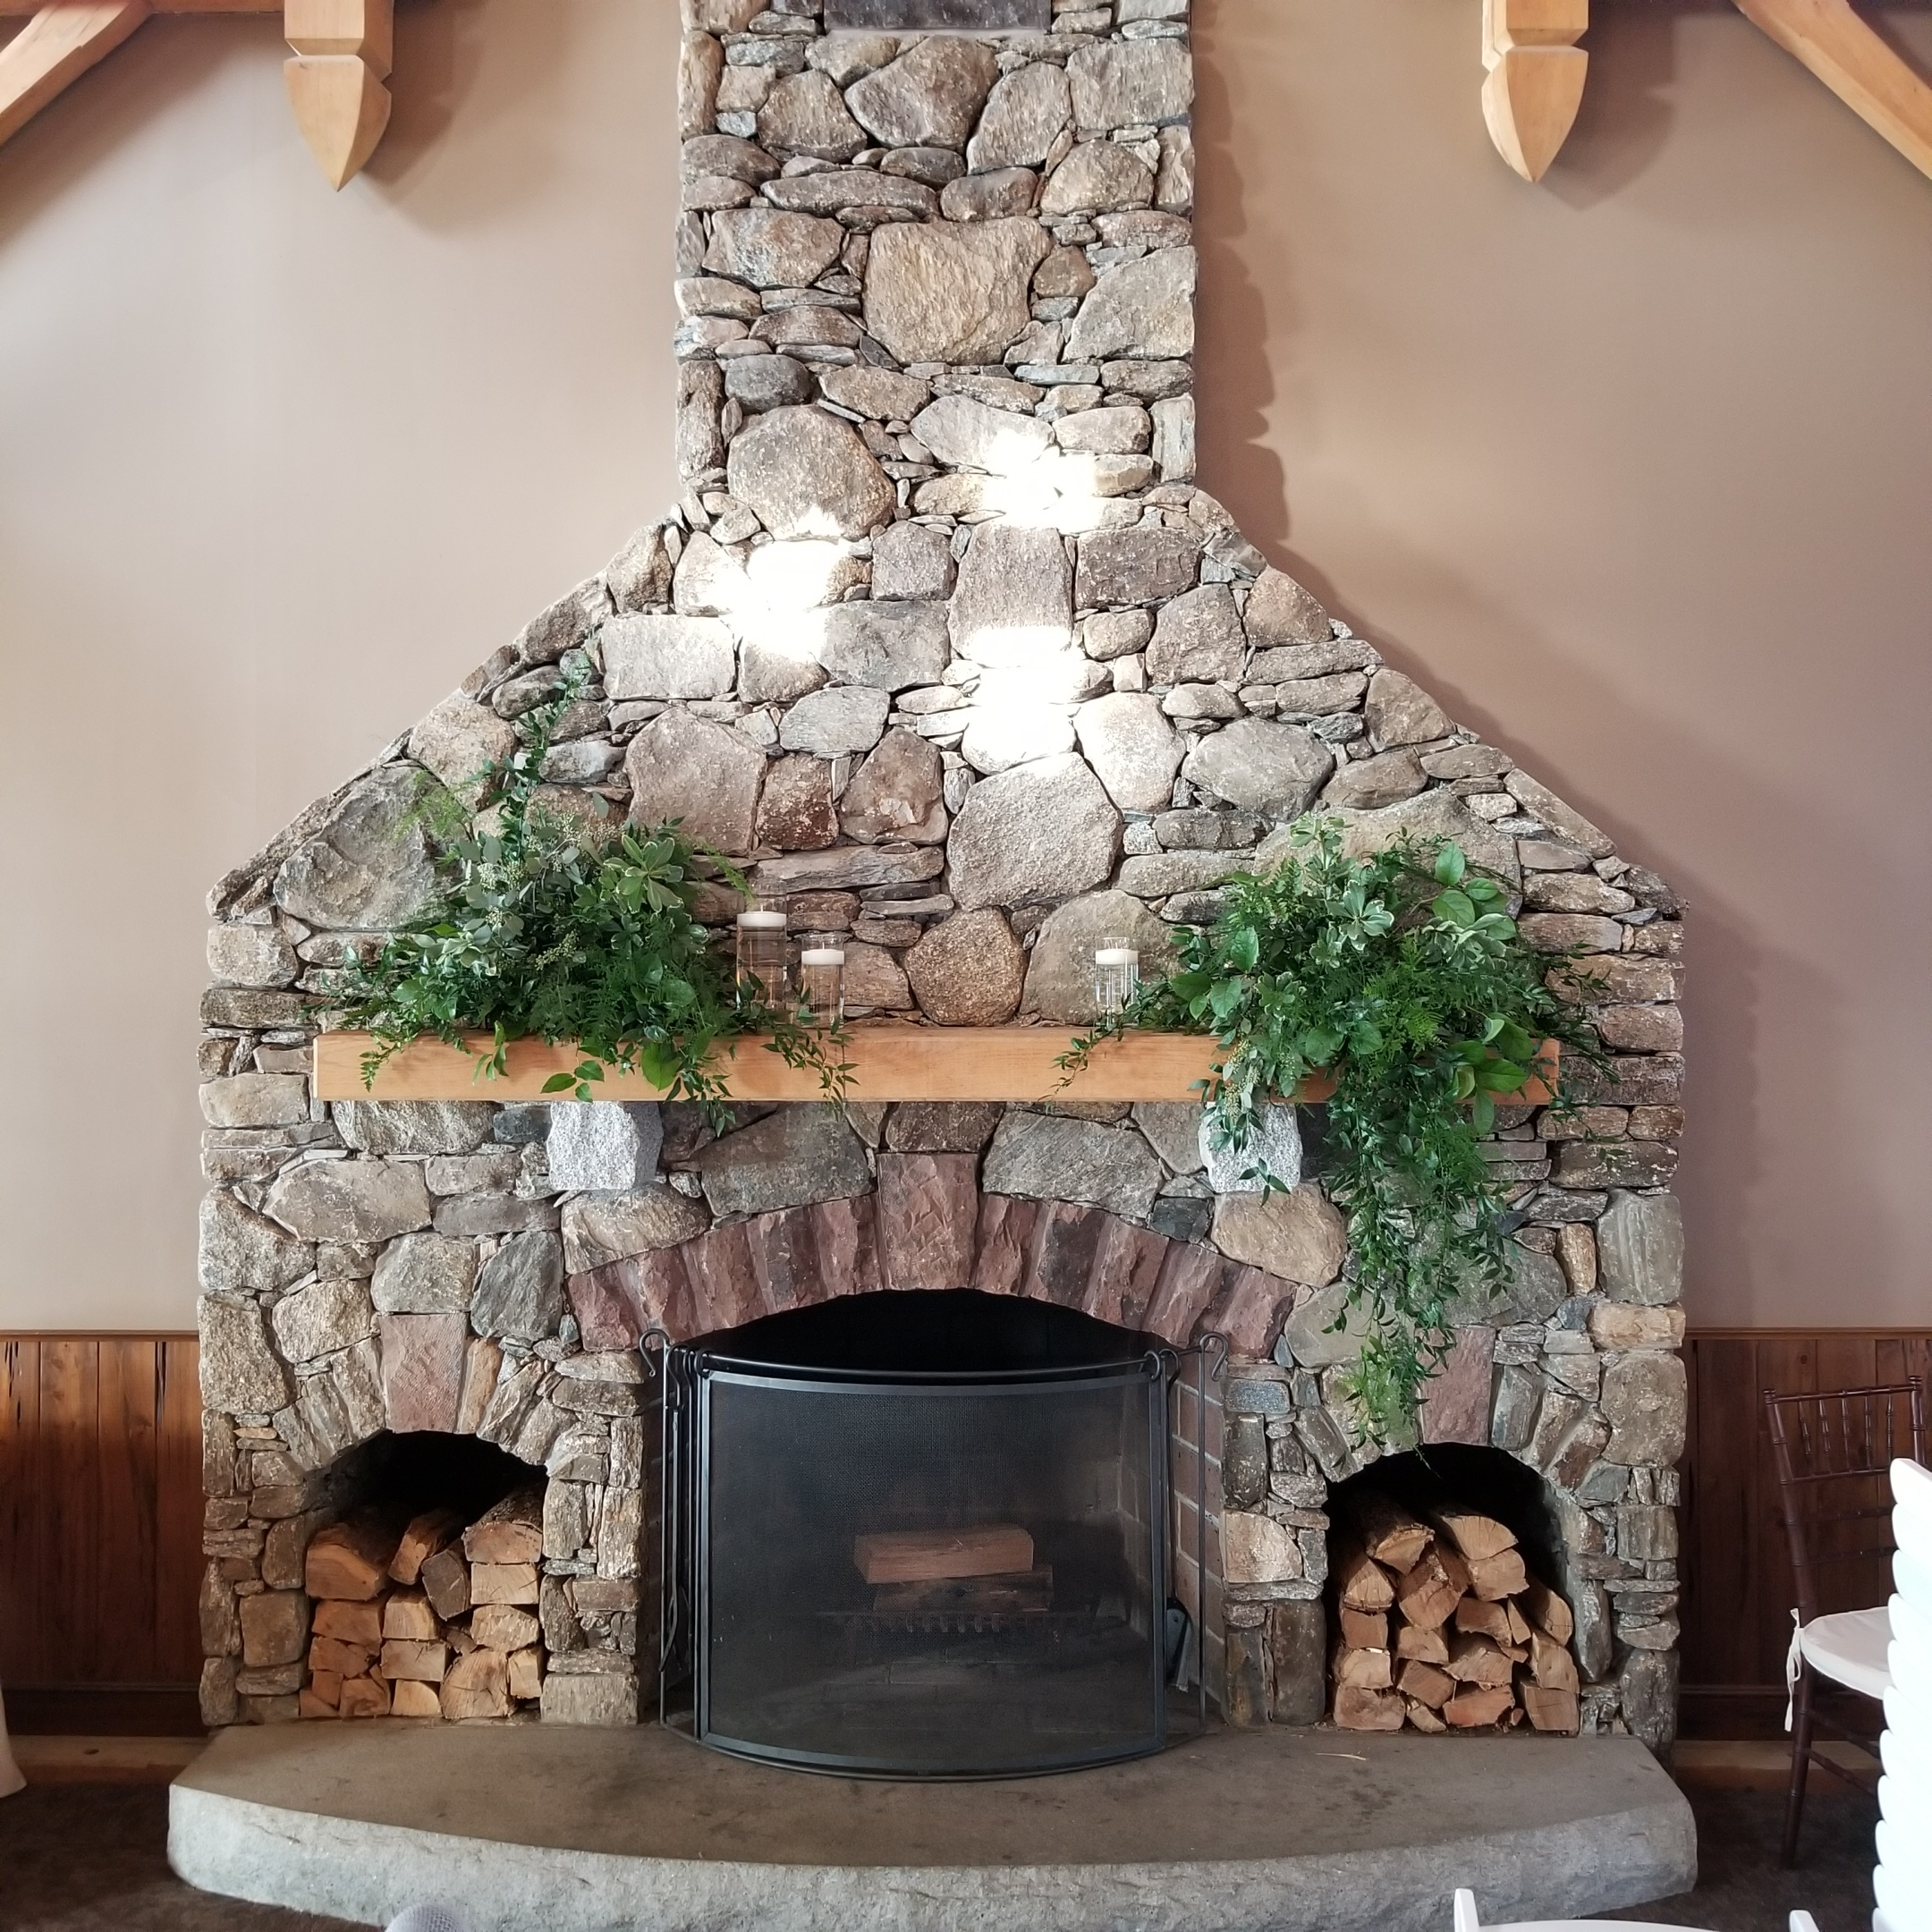 Harrington Farm Fireplace - greenery and floating candles.jpg